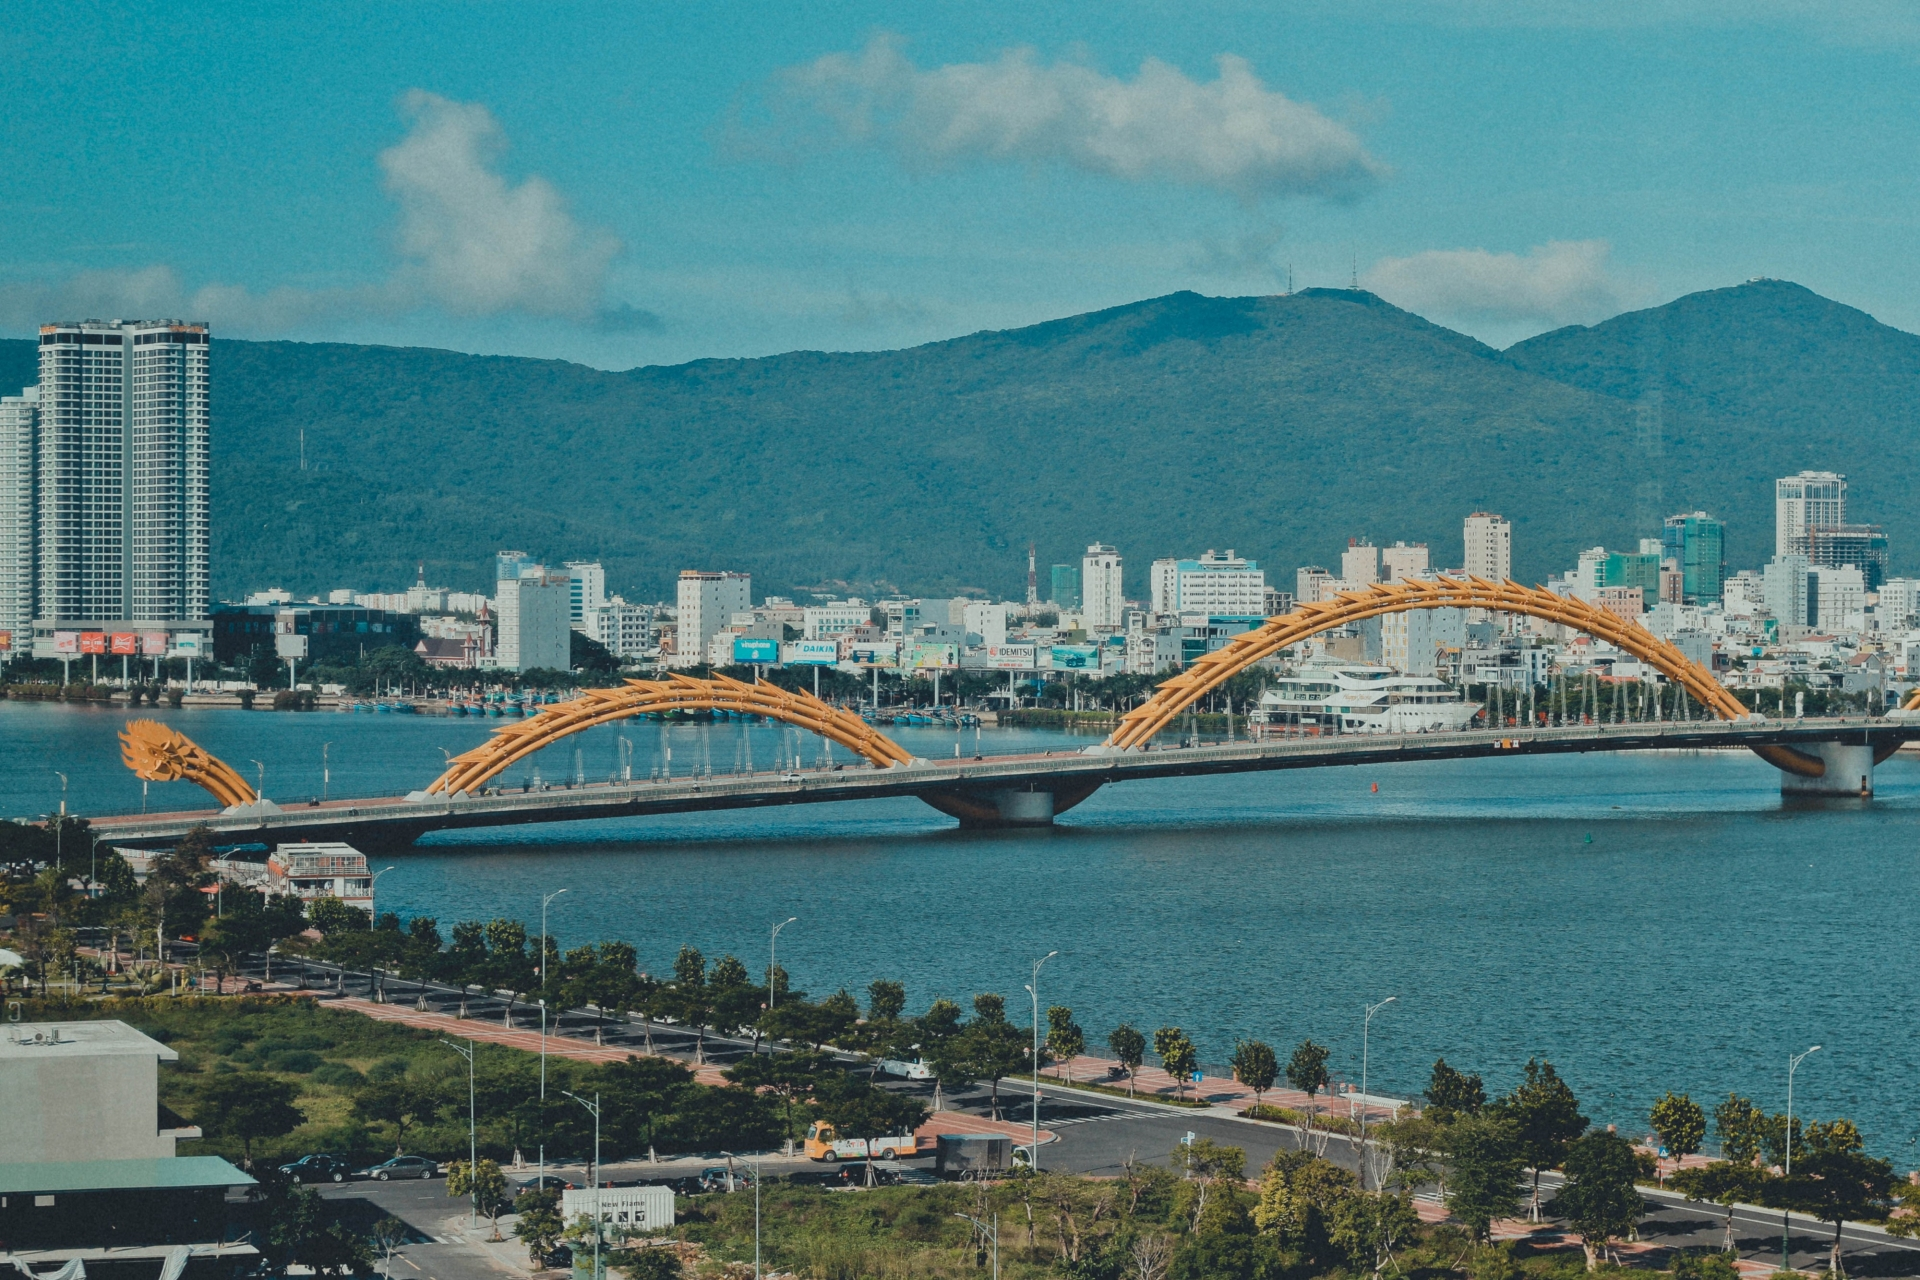 southeast asia poised with more ma opportunities in near to medium term